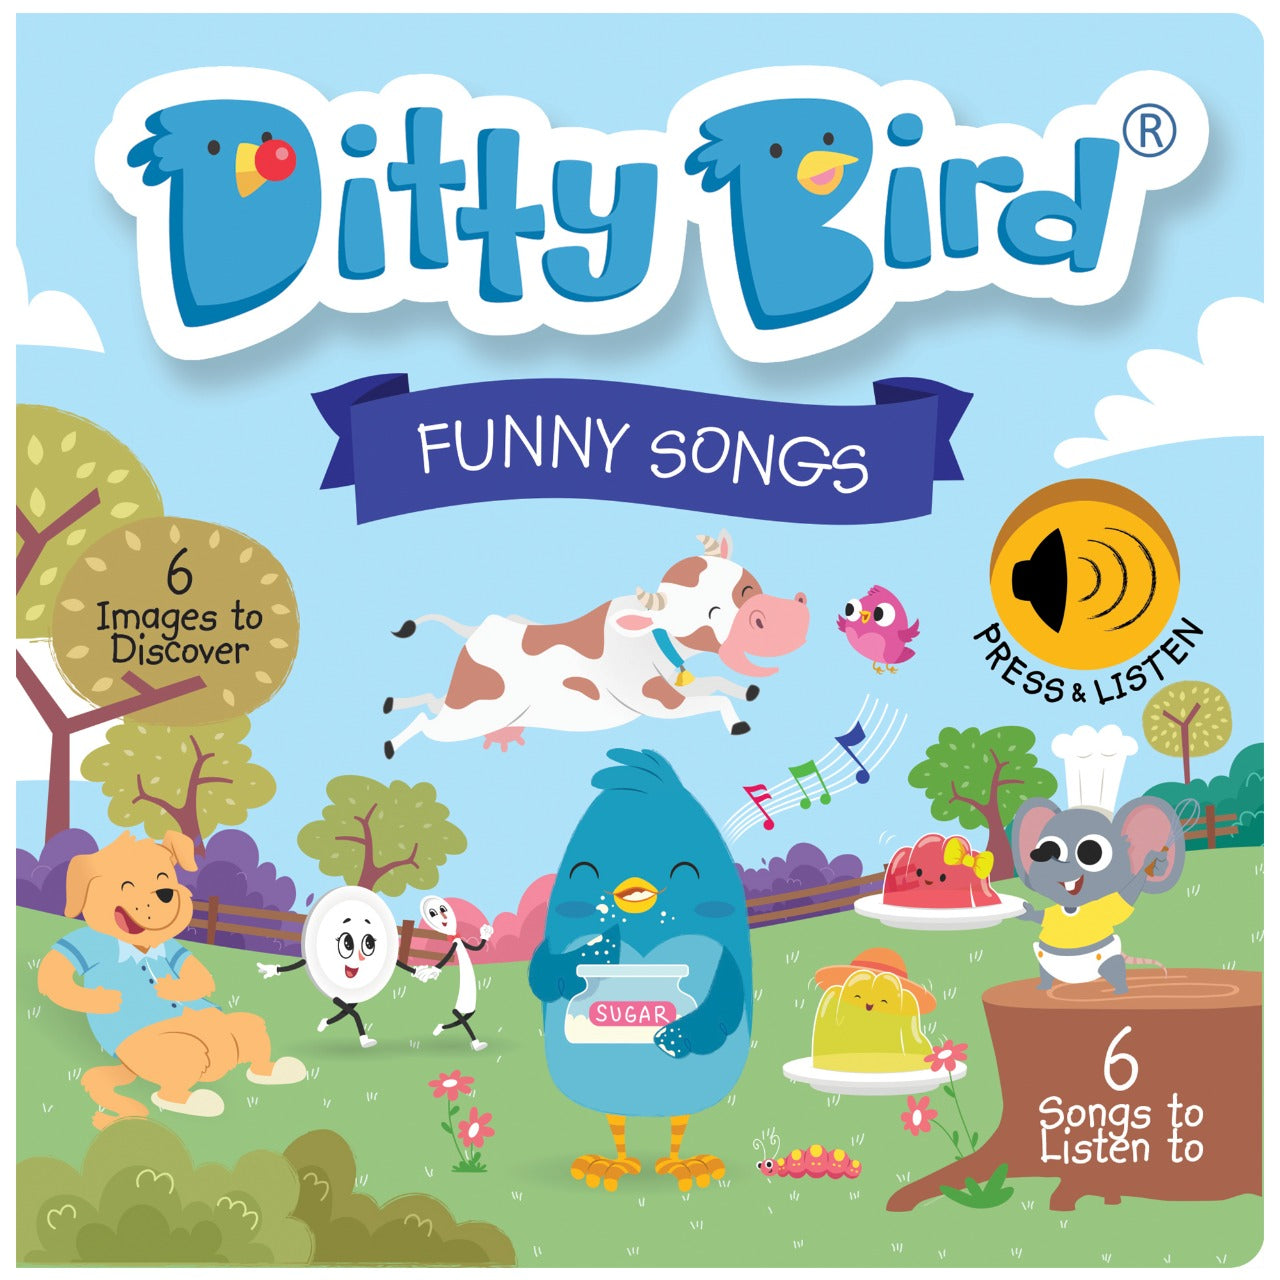 NEW! DITTY BIRD - FUNNY SONGS